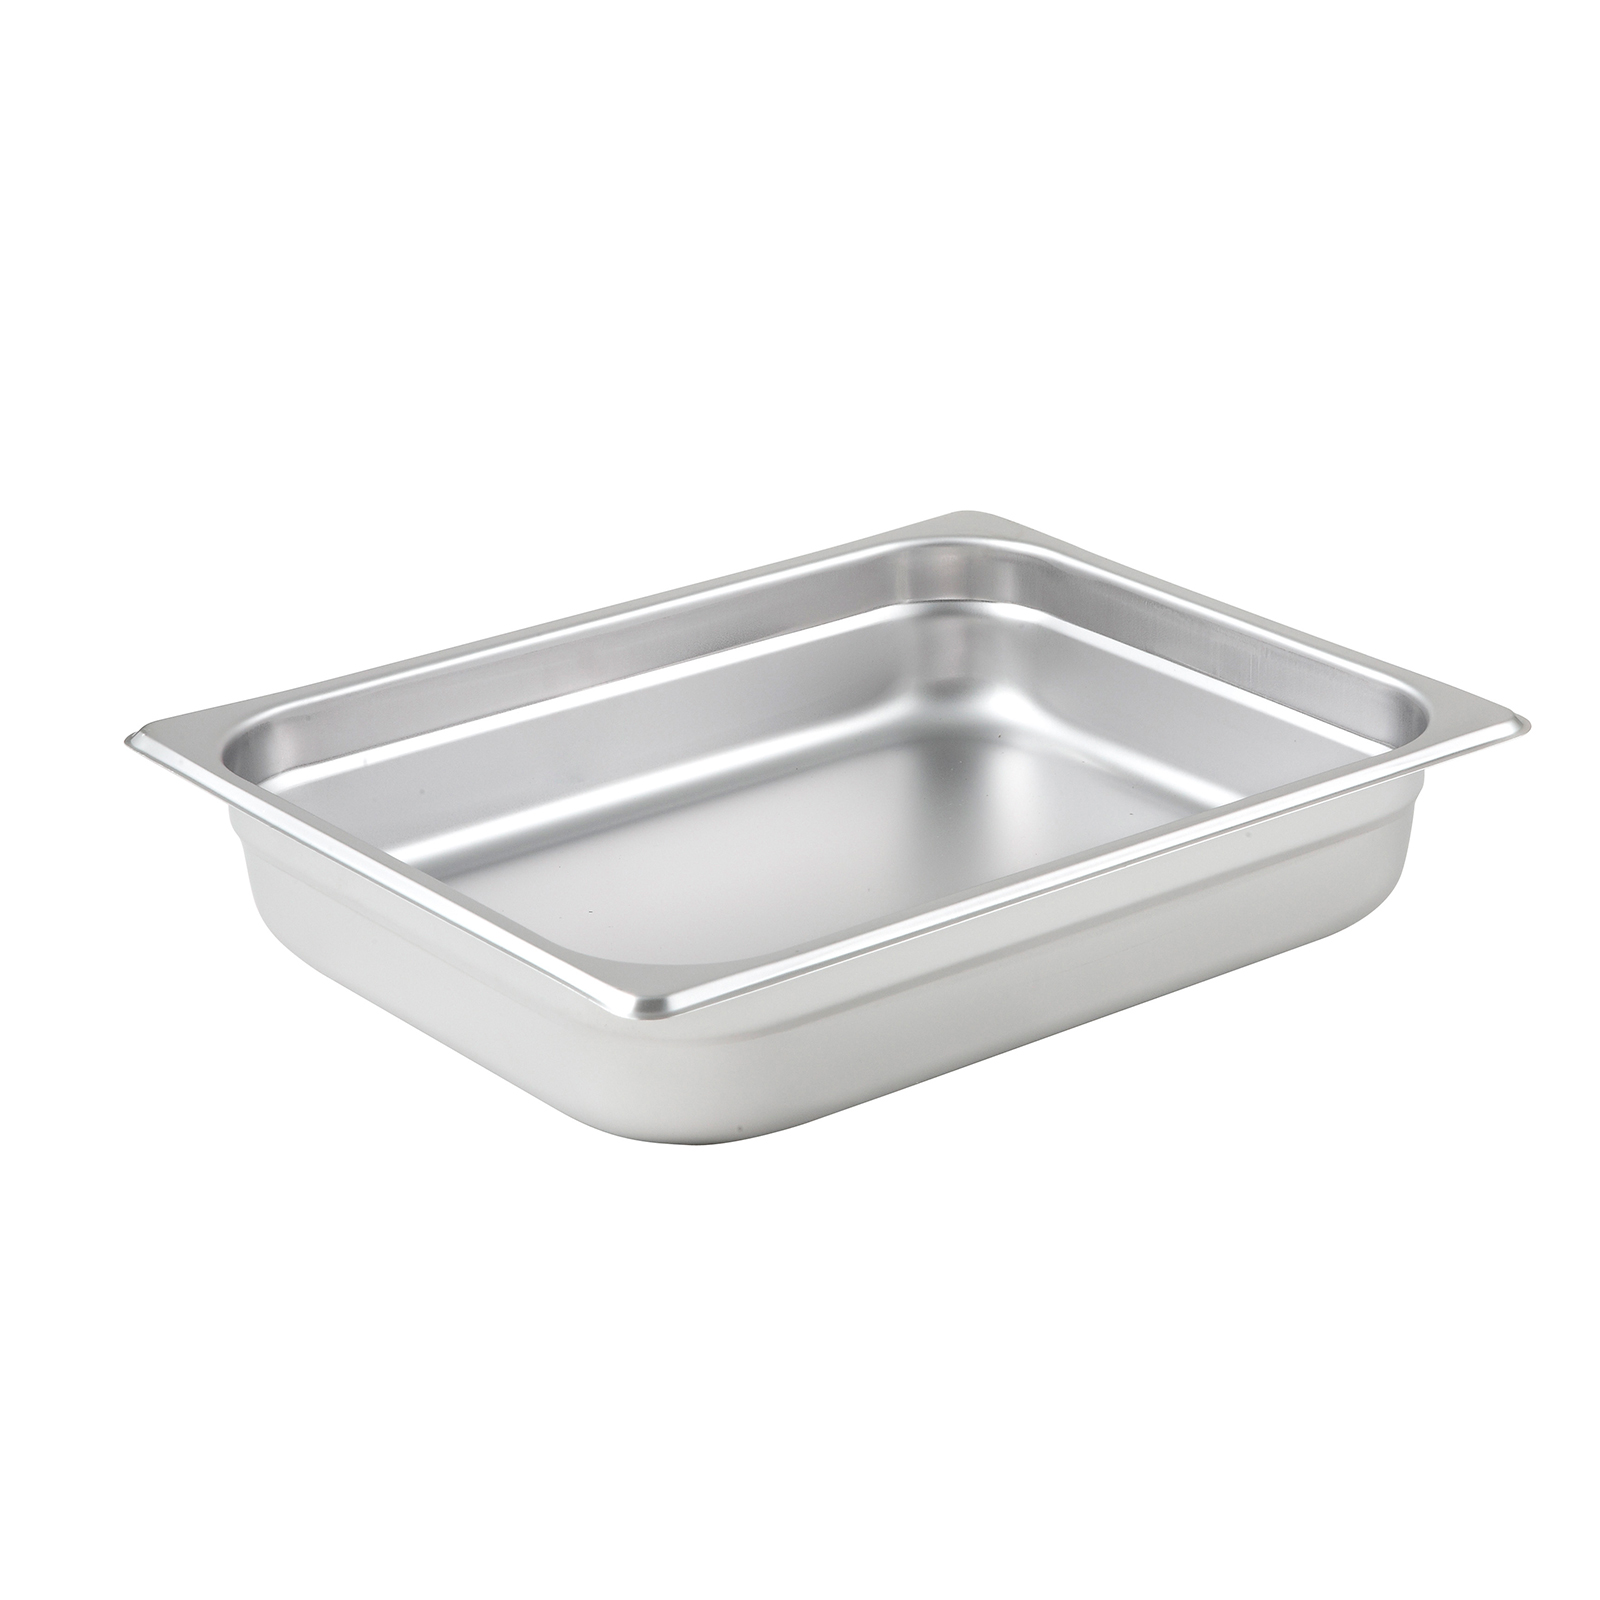 Winco SPJP-202 steam table pan, stainless steel